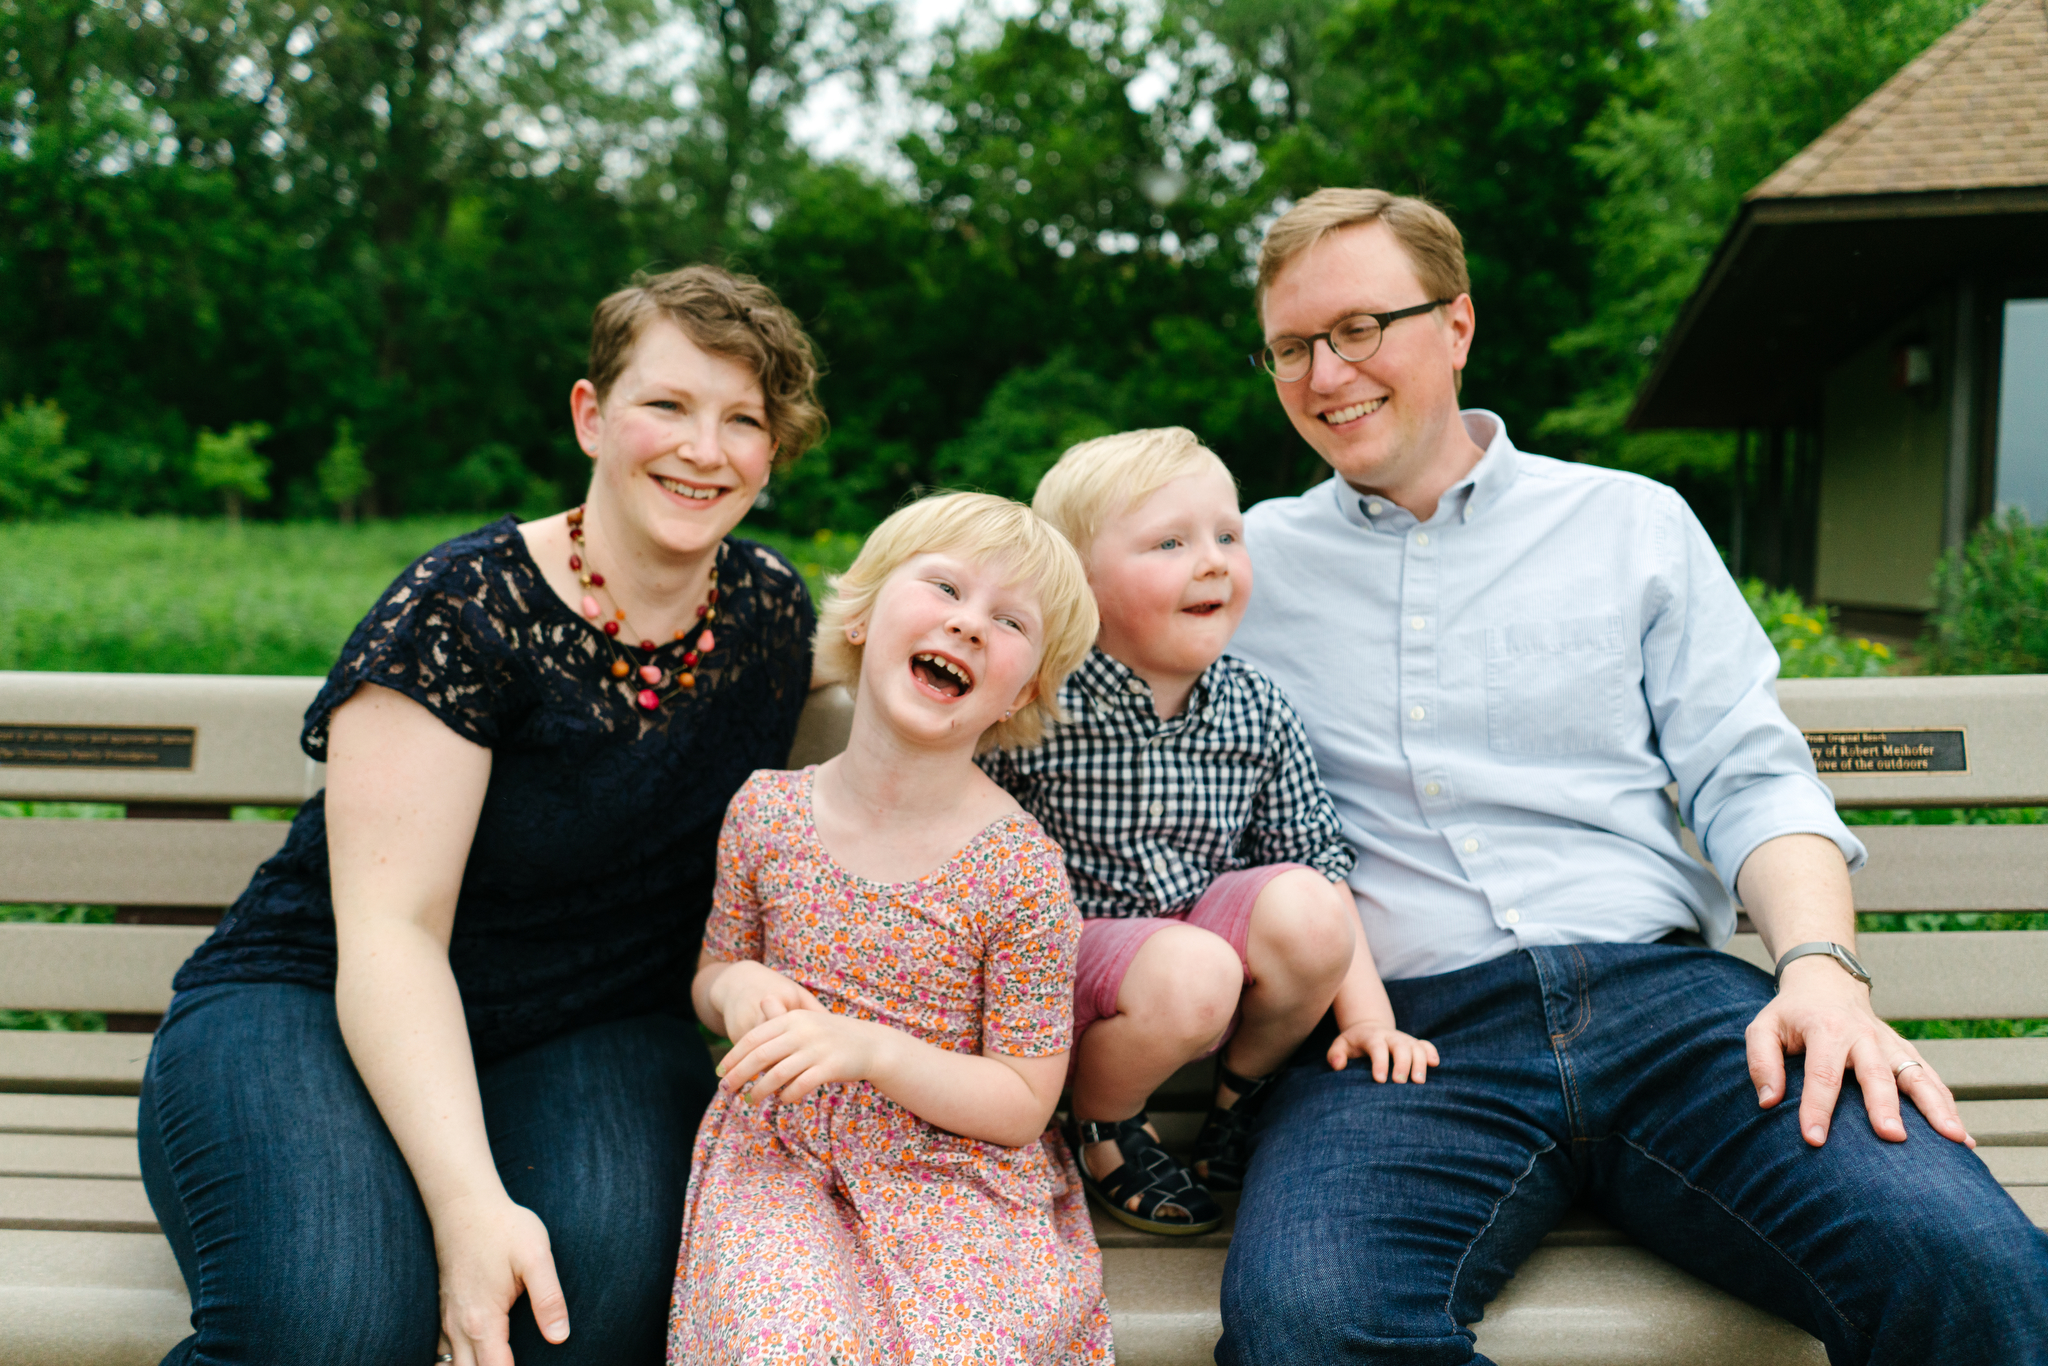 Family Portrait Session at Wood Lake Nature Center in Richfield, Minnesota